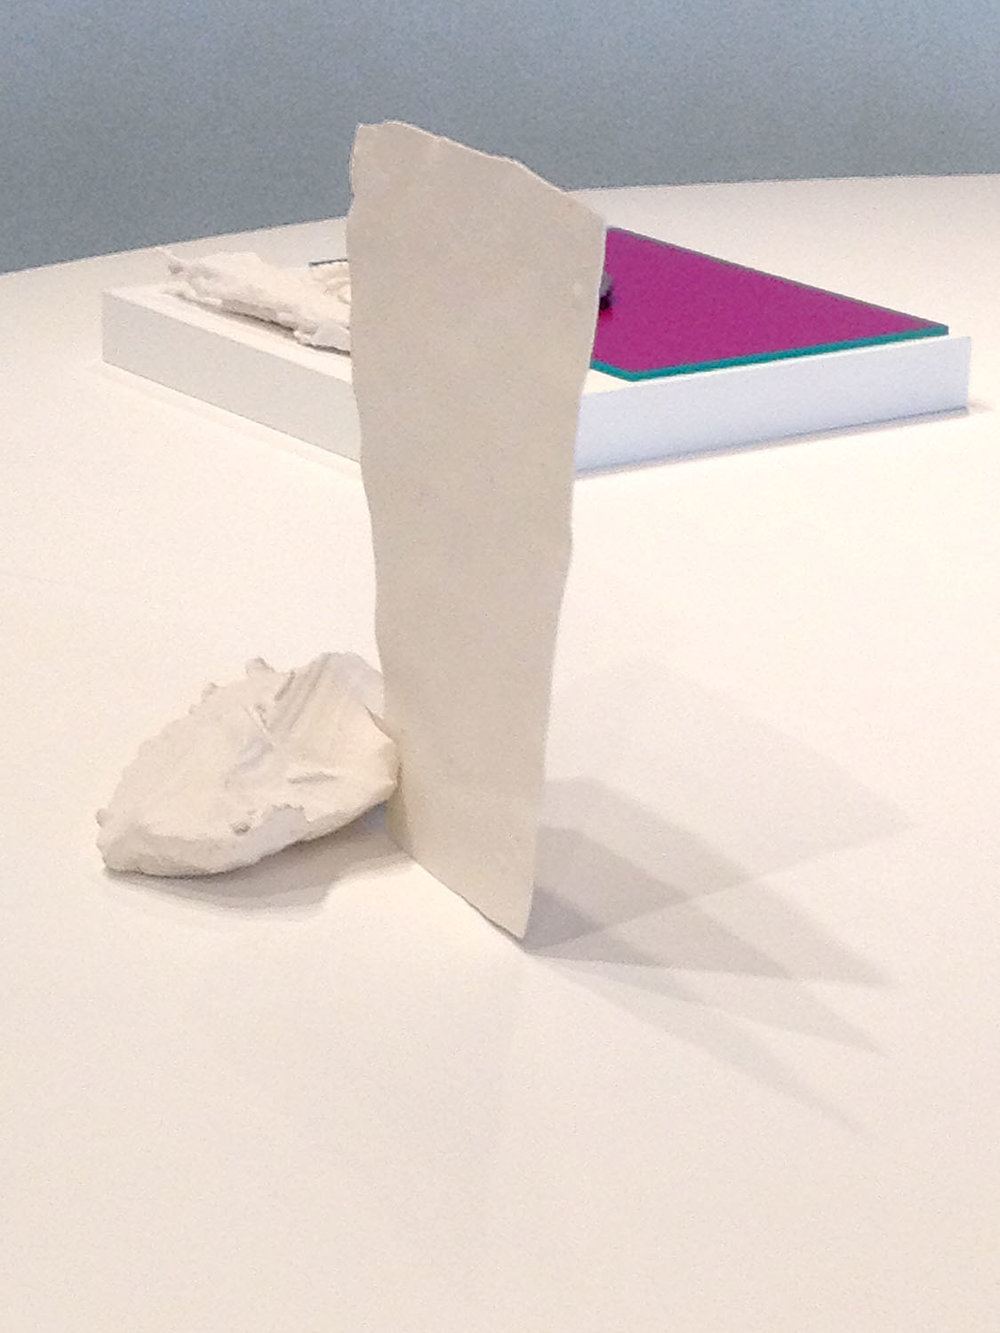 Monument , 2014, porcelain, glazed ceramic, 14 x 13 x 9 inches